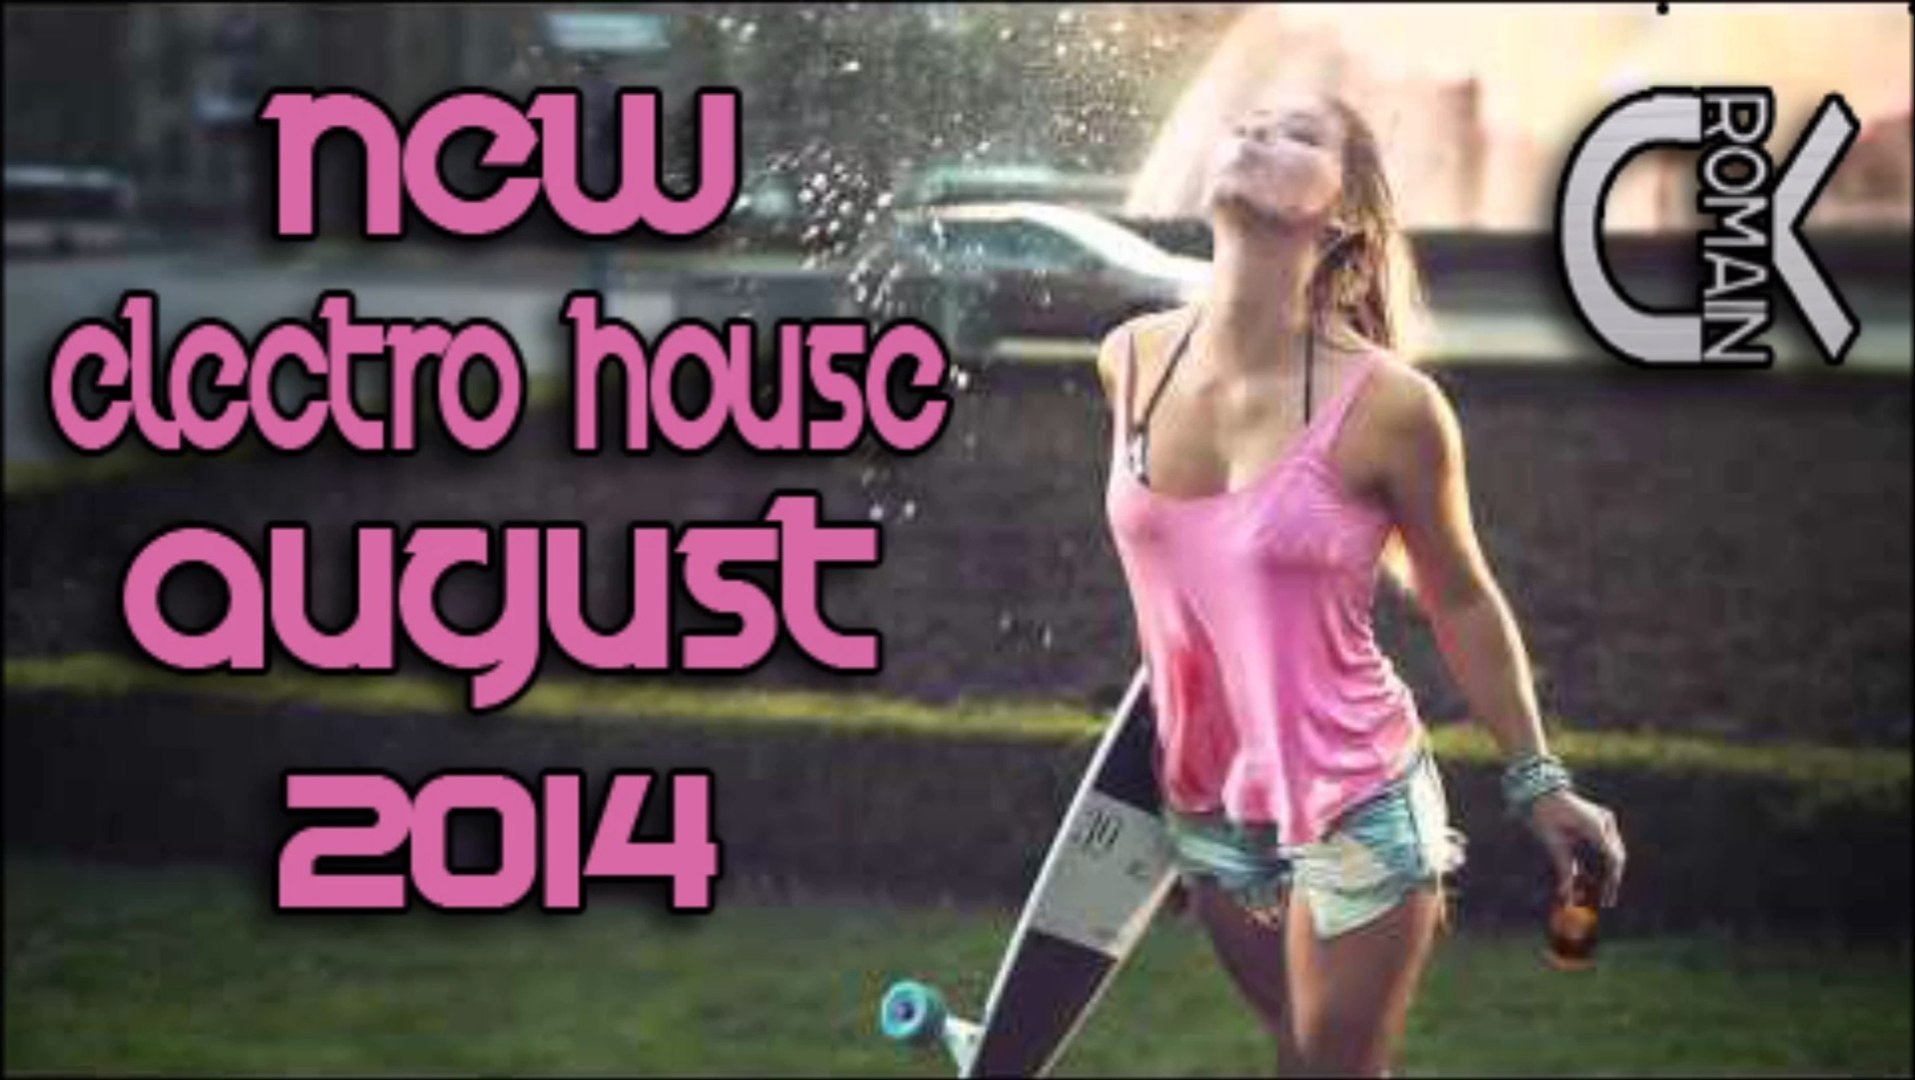 New Electro House August 2014 I Drum & Bass I - RomainDx